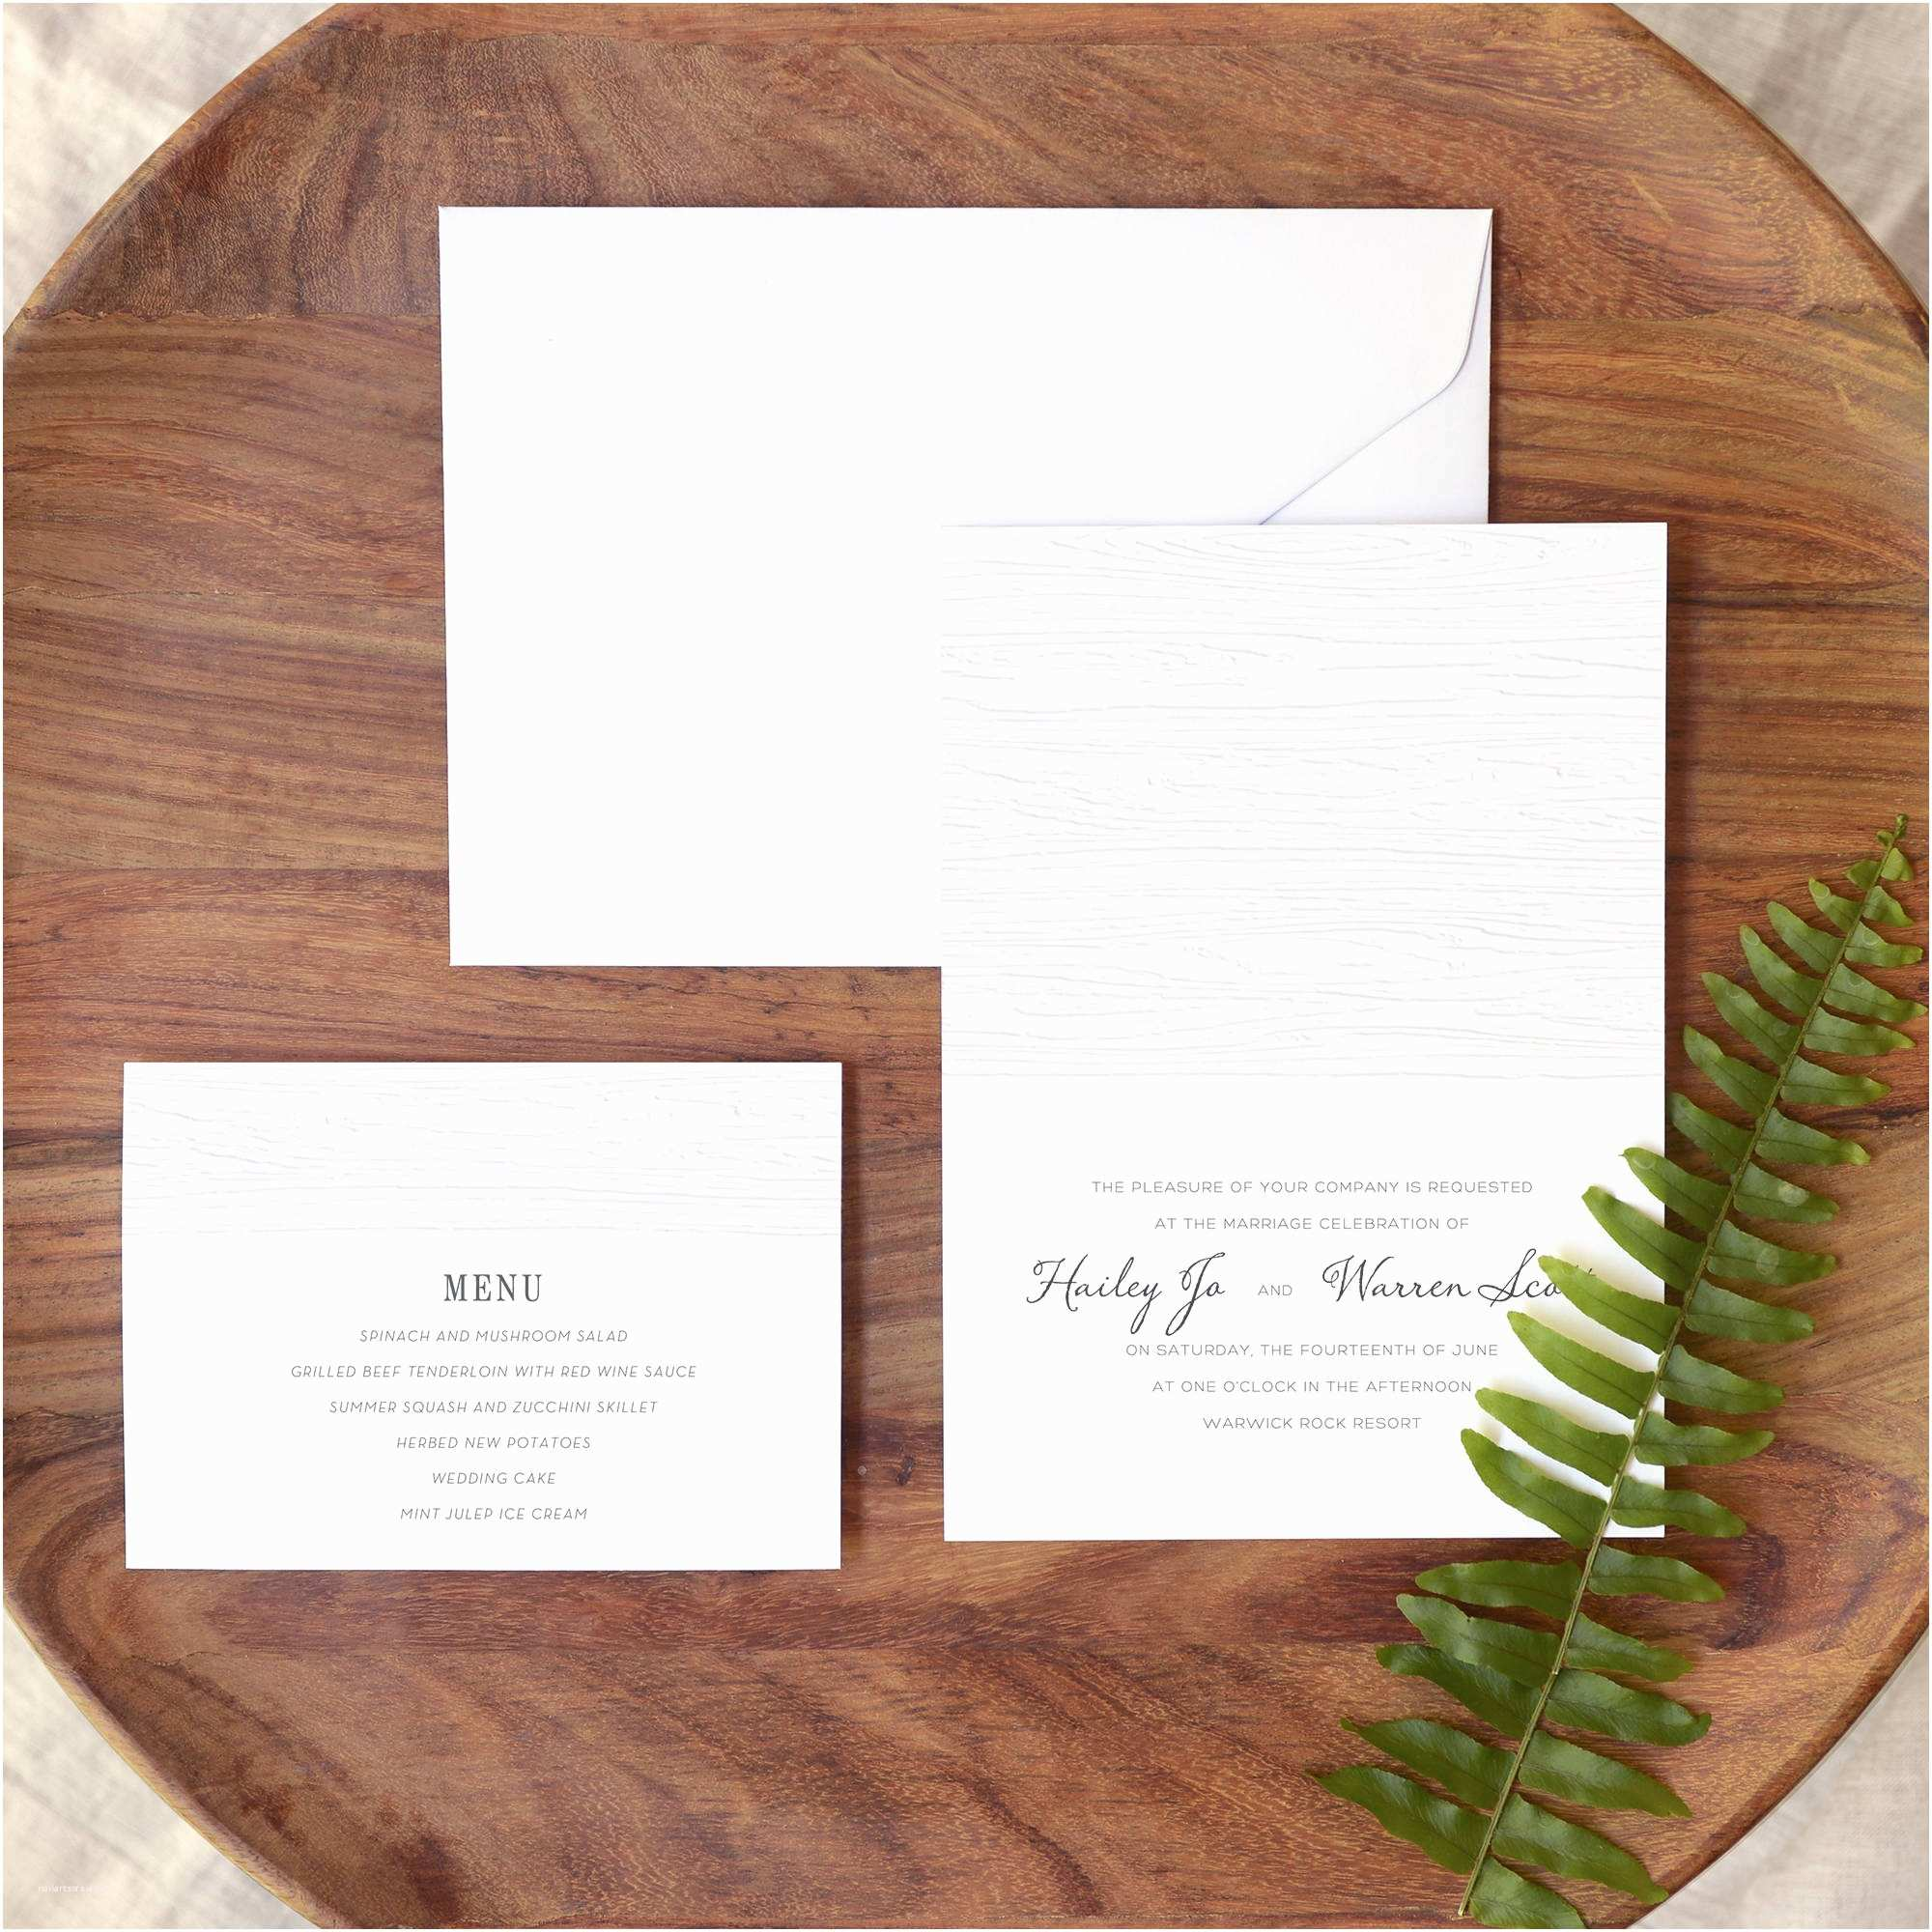 Walmart Personalized Wedding Invitations Walmart Wedding Invitations Kit